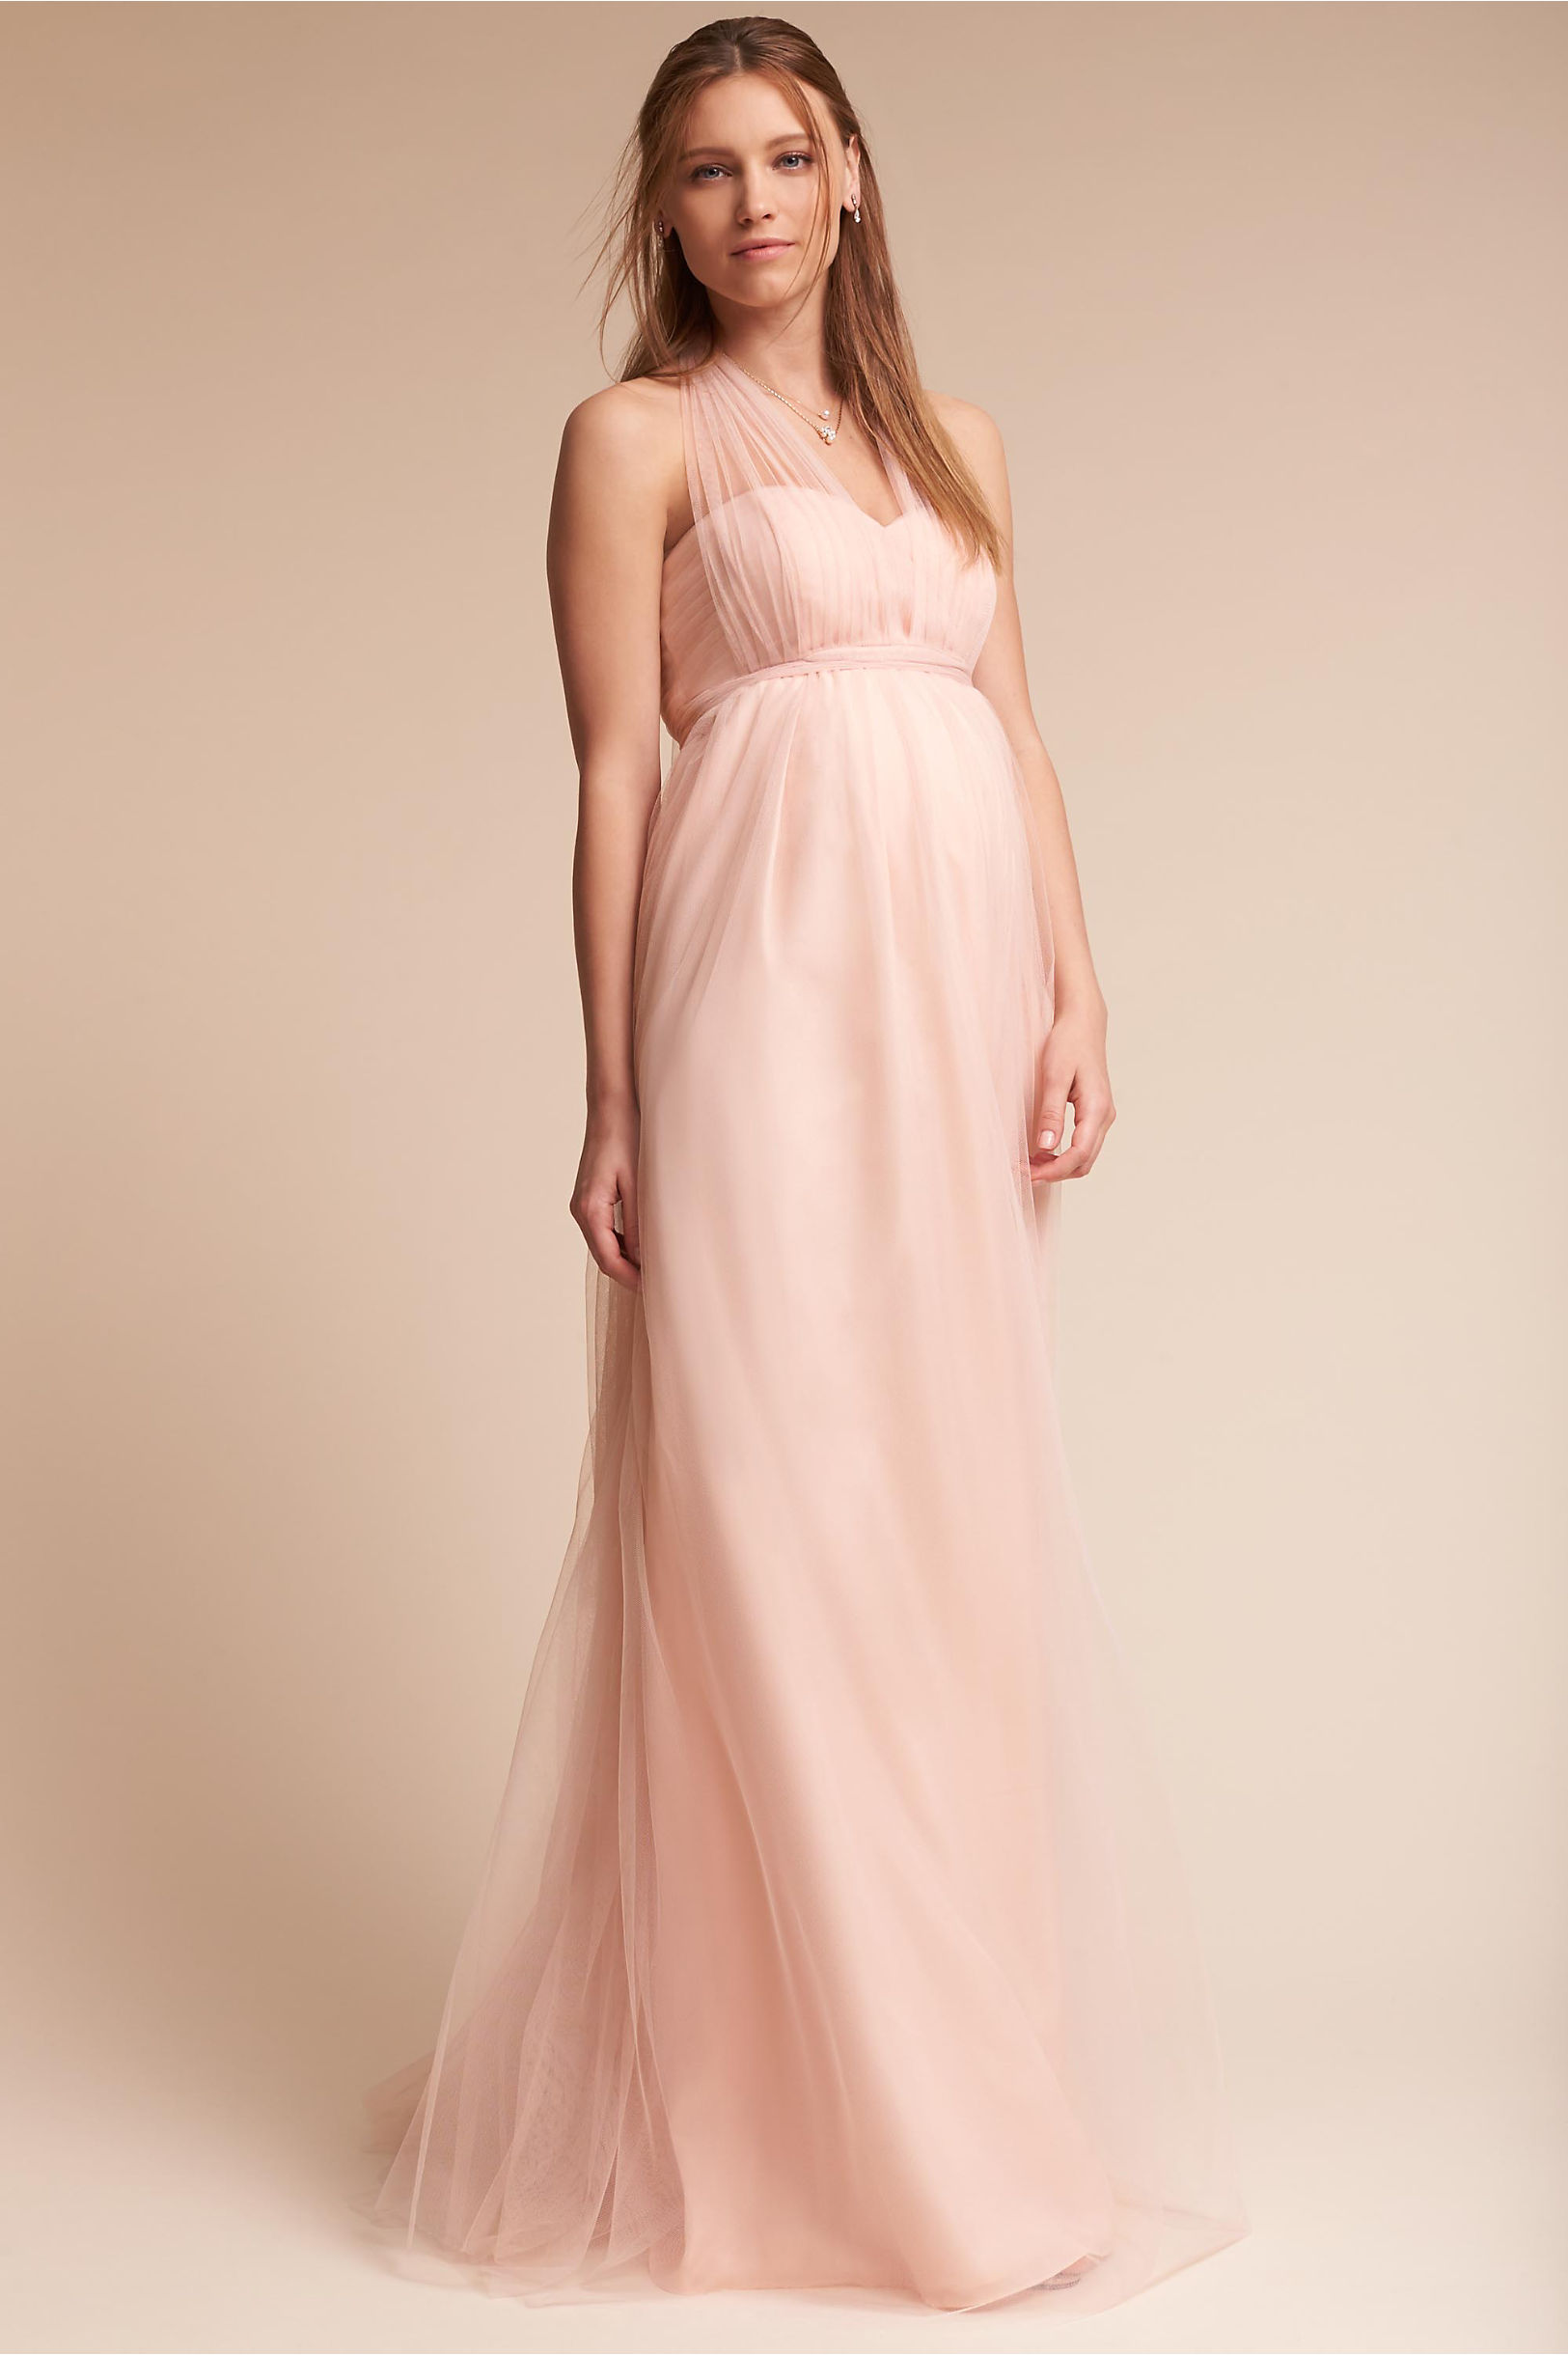 Serafina Maternity Dress Blush in Sale | BHLDN